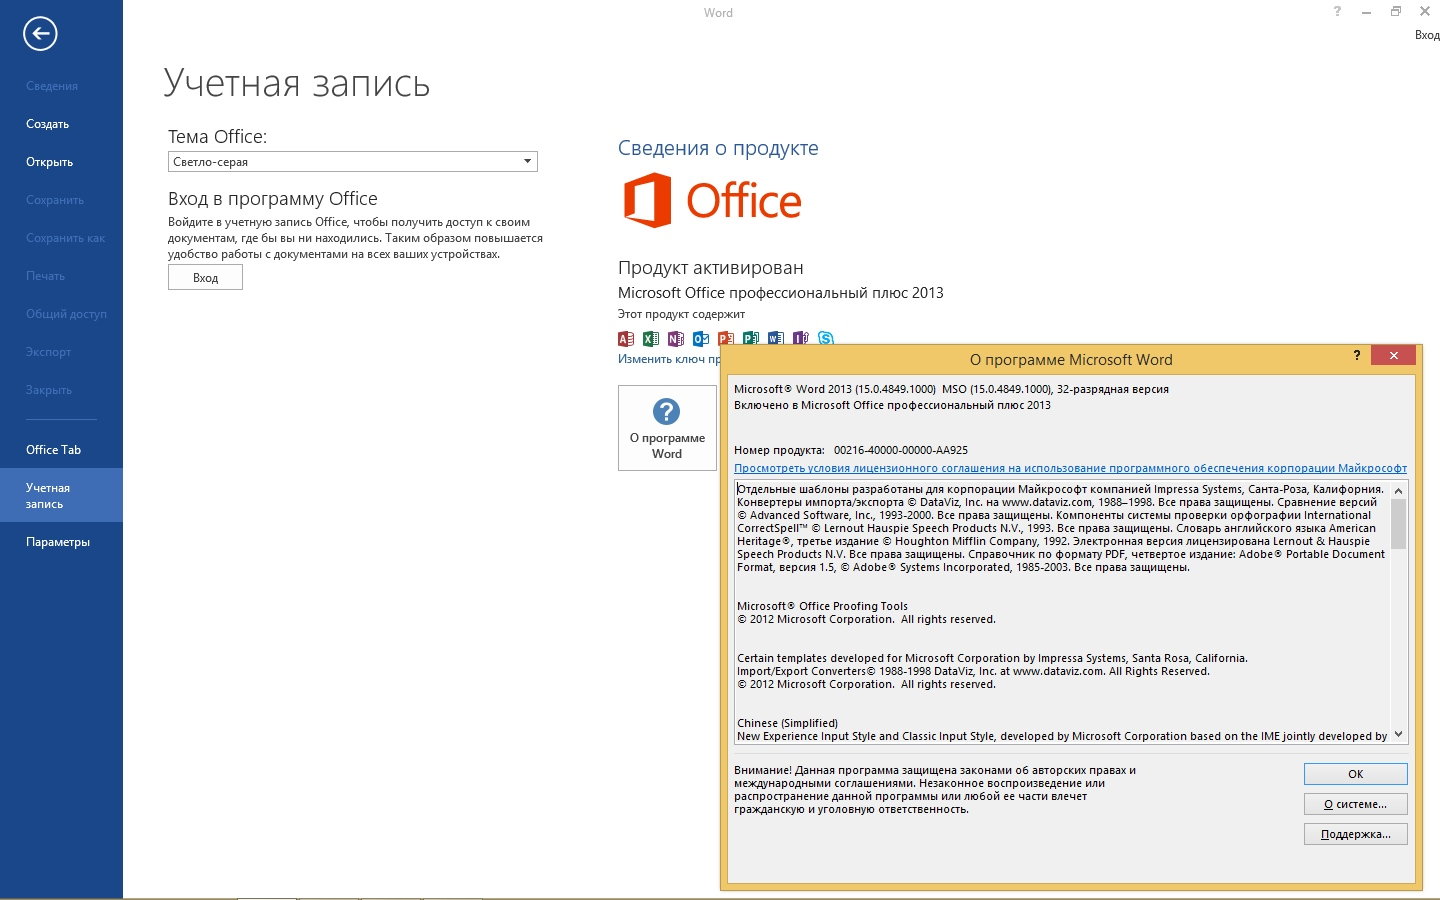 Microsoft Office 2013 SP1 Professional Plus + Visio Pro + Project Pro 15.0.4963.1002 RePack by KpoJIuK (2017) Multi / Русский